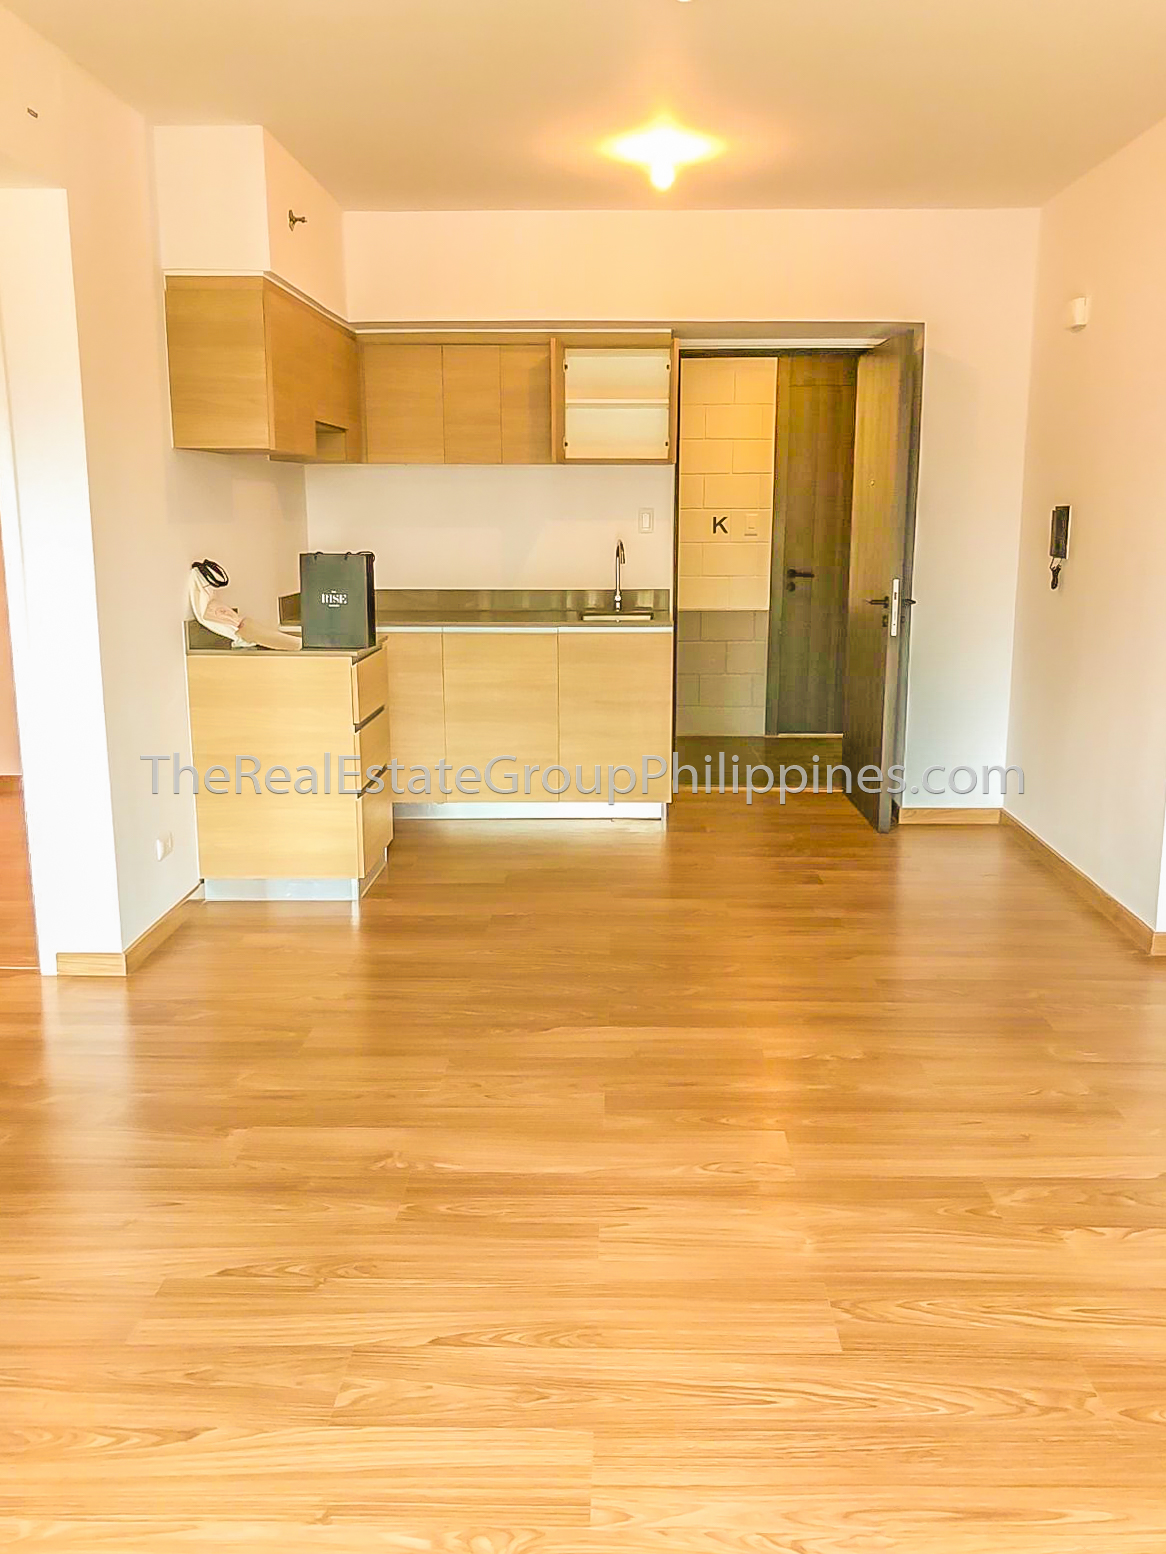 2BR Condo For Rent Lease The Rise Makati 70k (2 of 9)